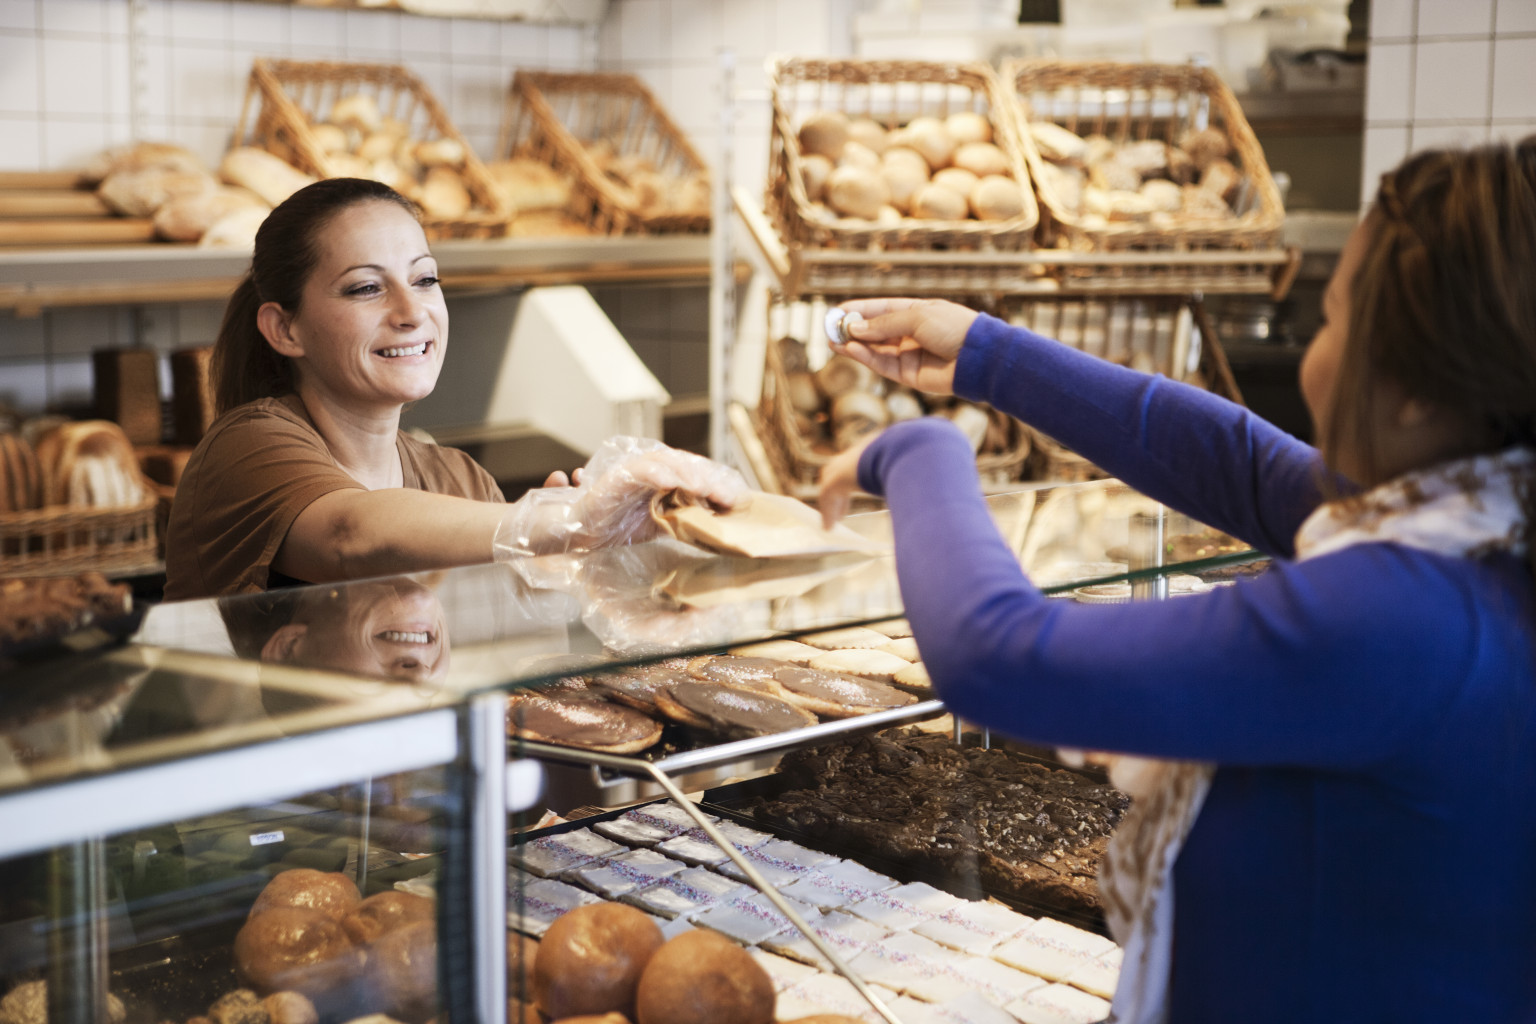 the best customer service 30042008 a new survey ranks companies on the quality of their customer service.